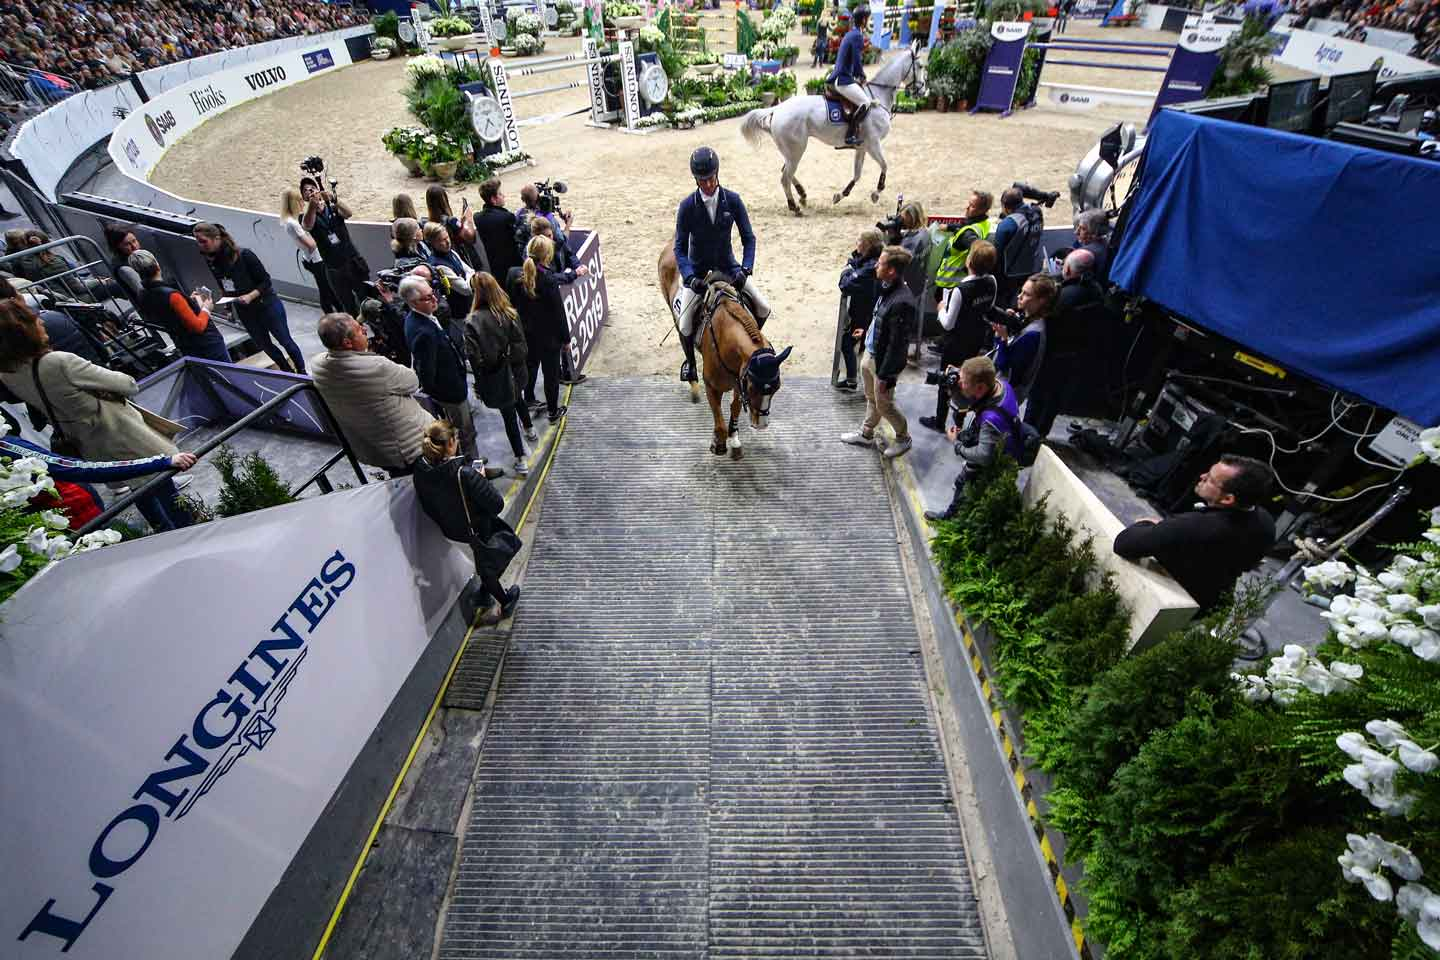 , Scuderia 1918 Horses in Göteborg for the Fei World Cup™ Show Jumping Final